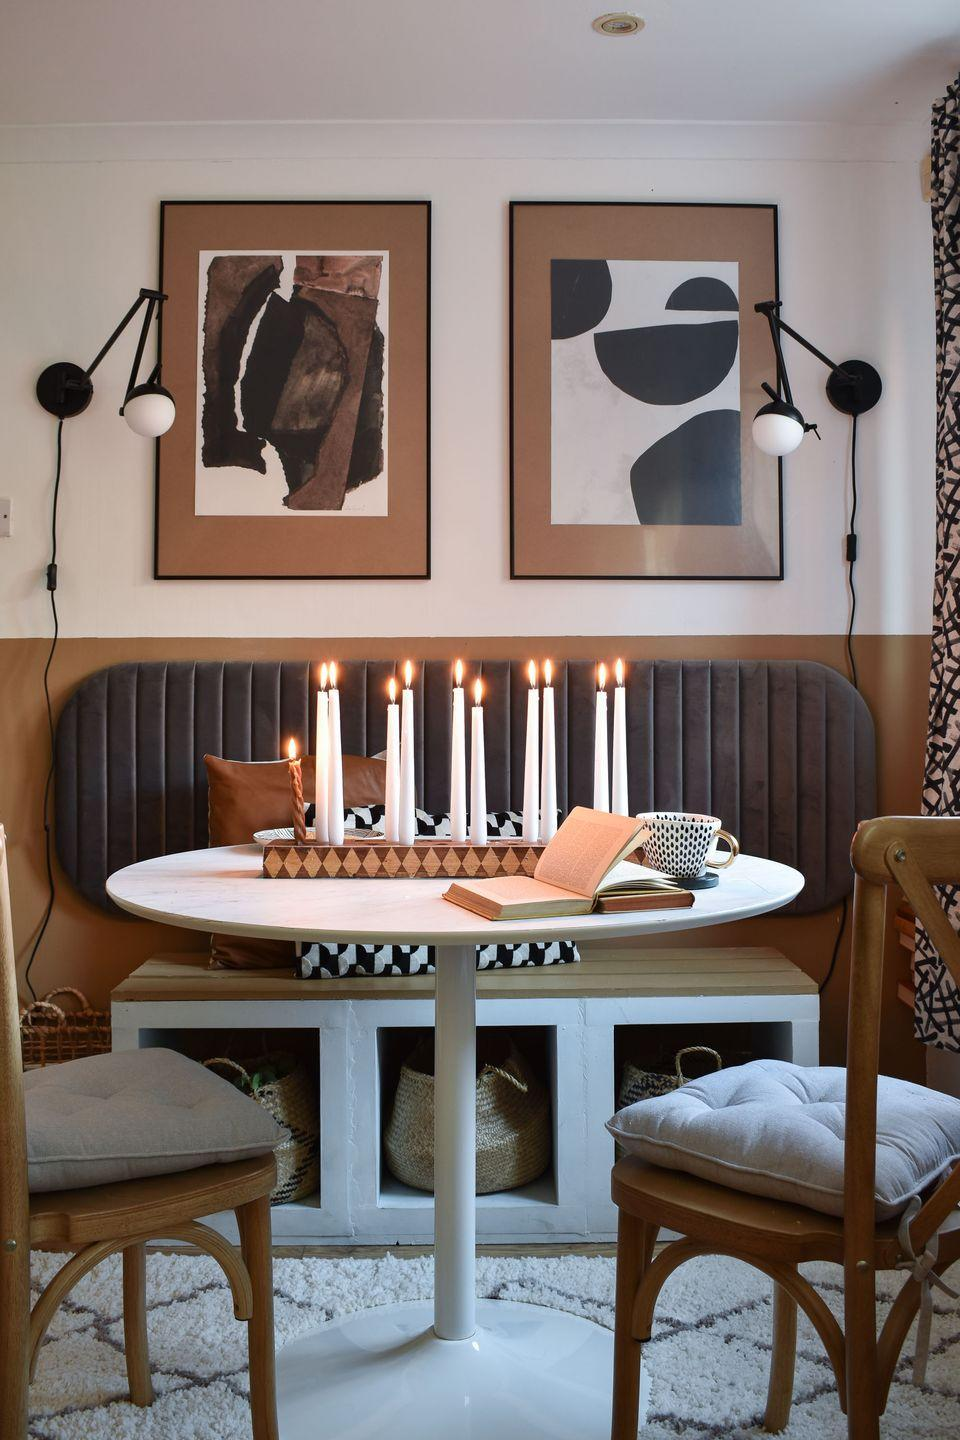 """<p>""""The plan was for the dining nook was to mimic a London café style aesthetic. The seating is <a href=""""https://grillo-designs.com/ikea-kallax-hack-diy-bench/"""" rel=""""nofollow noopener"""" target=""""_blank"""" data-ylk=""""slk:made from"""" class=""""link rapid-noclick-resp"""">made from</a> three<a href=""""https://go.redirectingat.com?id=127X1599956&url=https%3A%2F%2Fwww.ikea.com%2Fgb%2Fen%2Fcat%2Fkallax-series-27534%2F&sref=https%3A%2F%2Fwww.harpersbazaar.com%2Fuk%2Fculture%2Flifestyle_homes%2Fg35595137%2Finside-the-home-of-interiors-blogger-medina-grillo%2F"""" rel=""""nofollow noopener"""" target=""""_blank"""" data-ylk=""""slk:Ikea kallax cubes"""" class=""""link rapid-noclick-resp""""> Ikea kallax cubes</a> and the backing is a bed headboard. The table and chairs are from <a href=""""https://www.next.co.uk/"""" rel=""""nofollow noopener"""" target=""""_blank"""" data-ylk=""""slk:Next."""" class=""""link rapid-noclick-resp"""">Next.</a> I love the abstract art which is by a seller on Etsy called <a href=""""https://go.redirectingat.com?id=127X1599956&url=https%3A%2F%2Fwww.etsy.com%2Fuk%2Fshop%2FGalyaS%3Fref%3Dsimple-shop-header-name%26listing_id%3D511746117&sref=https%3A%2F%2Fwww.harpersbazaar.com%2Fuk%2Fculture%2Flifestyle_homes%2Fg35595137%2Finside-the-home-of-interiors-blogger-medina-grillo%2F"""" rel=""""nofollow noopener"""" target=""""_blank"""" data-ylk=""""slk:GalyaS."""" class=""""link rapid-noclick-resp"""">GalyaS.</a> The <a href=""""https://grillo-designs.com/checkered-diy-candlestick-holder/"""" rel=""""nofollow noopener"""" target=""""_blank"""" data-ylk=""""slk:candle holder centrepiece was a DIY project."""" class=""""link rapid-noclick-resp"""">candle holder centrepiece was a DIY project.</a></p>"""